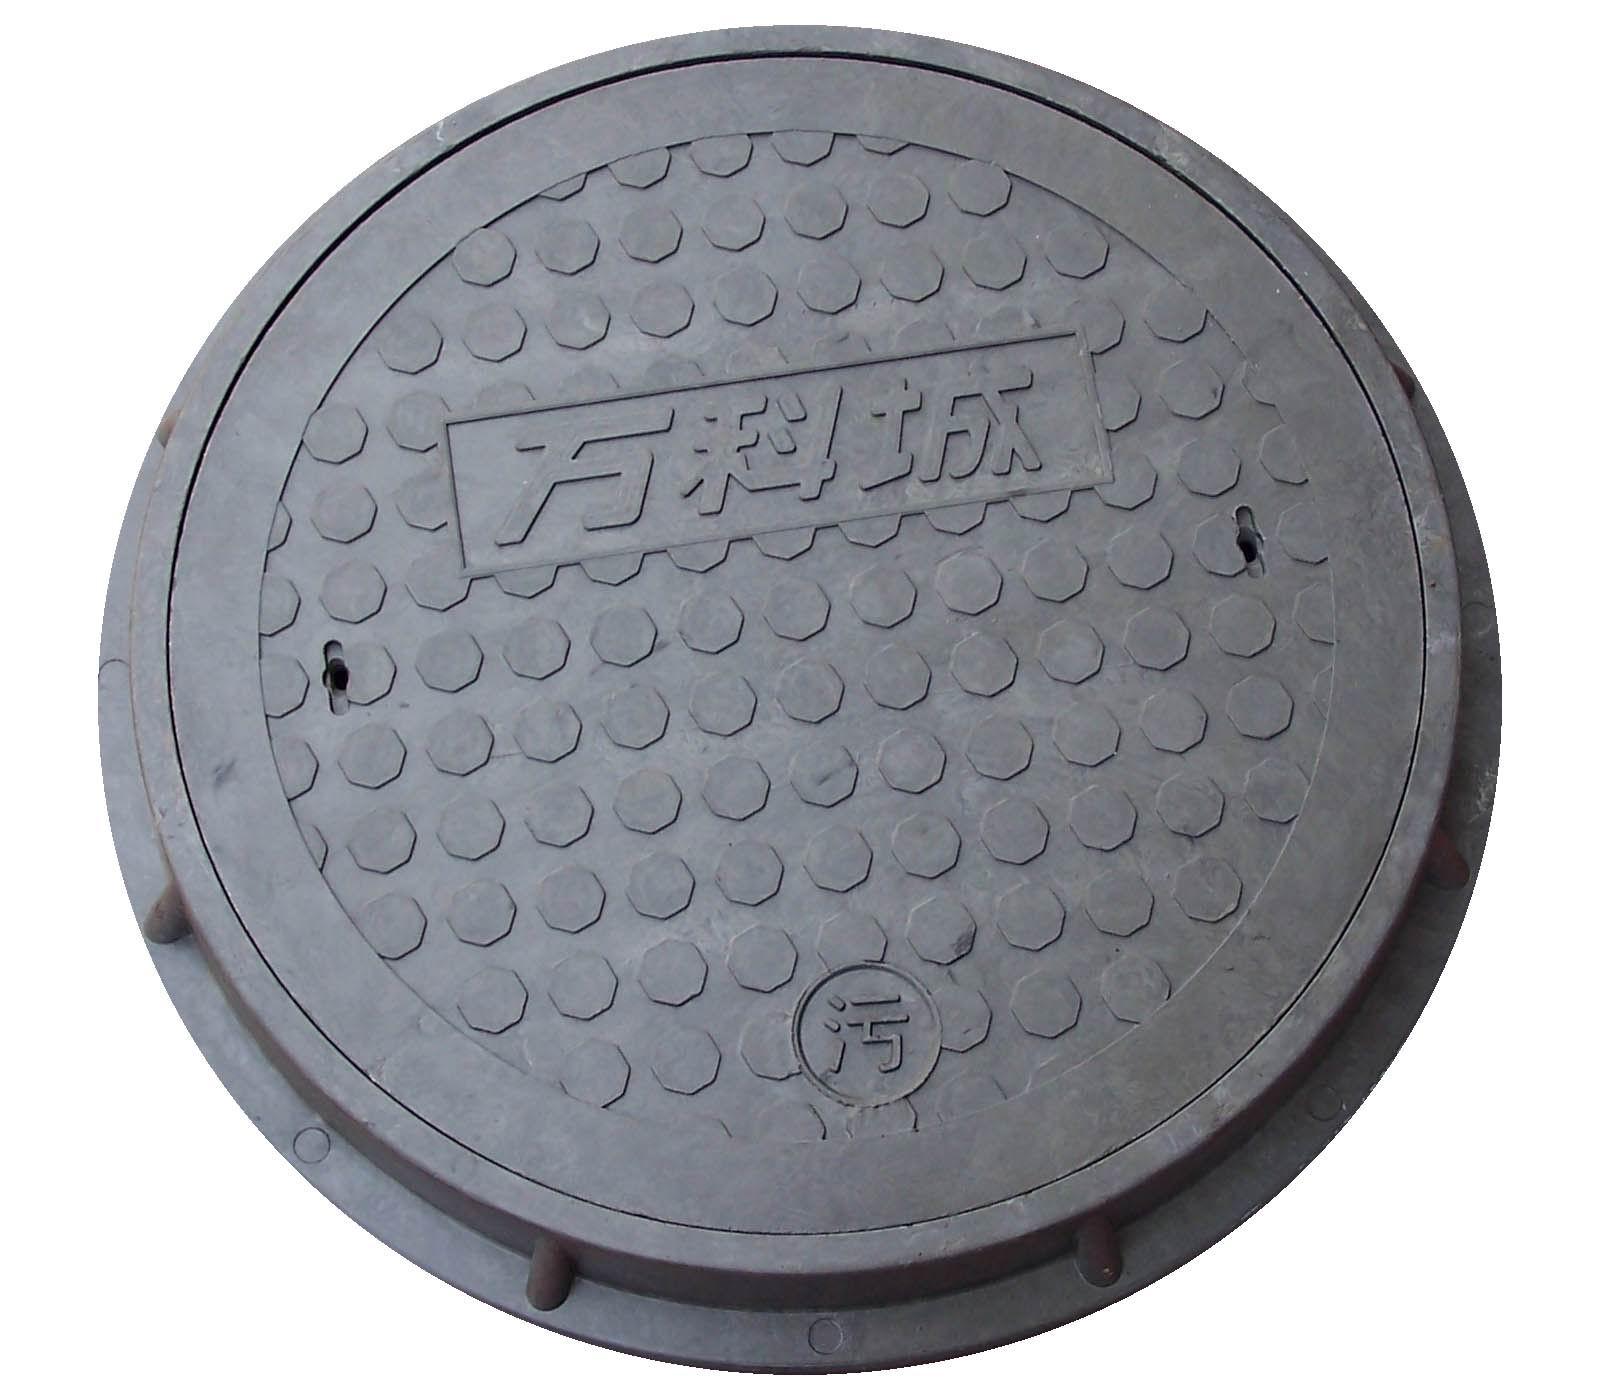 700-50mm smc bmc composite square manhole cover with CE certification